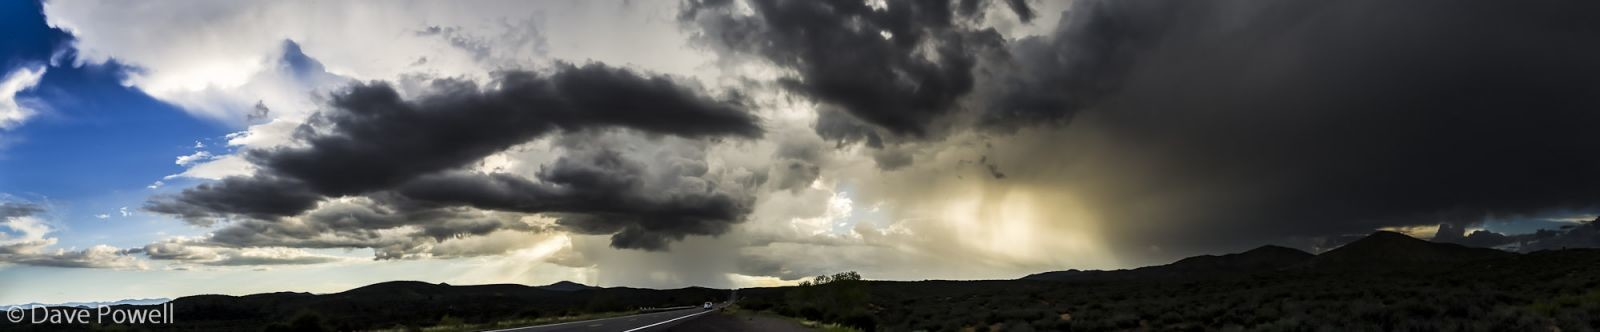 Arizona 120824 025 DP 19072 X 5005